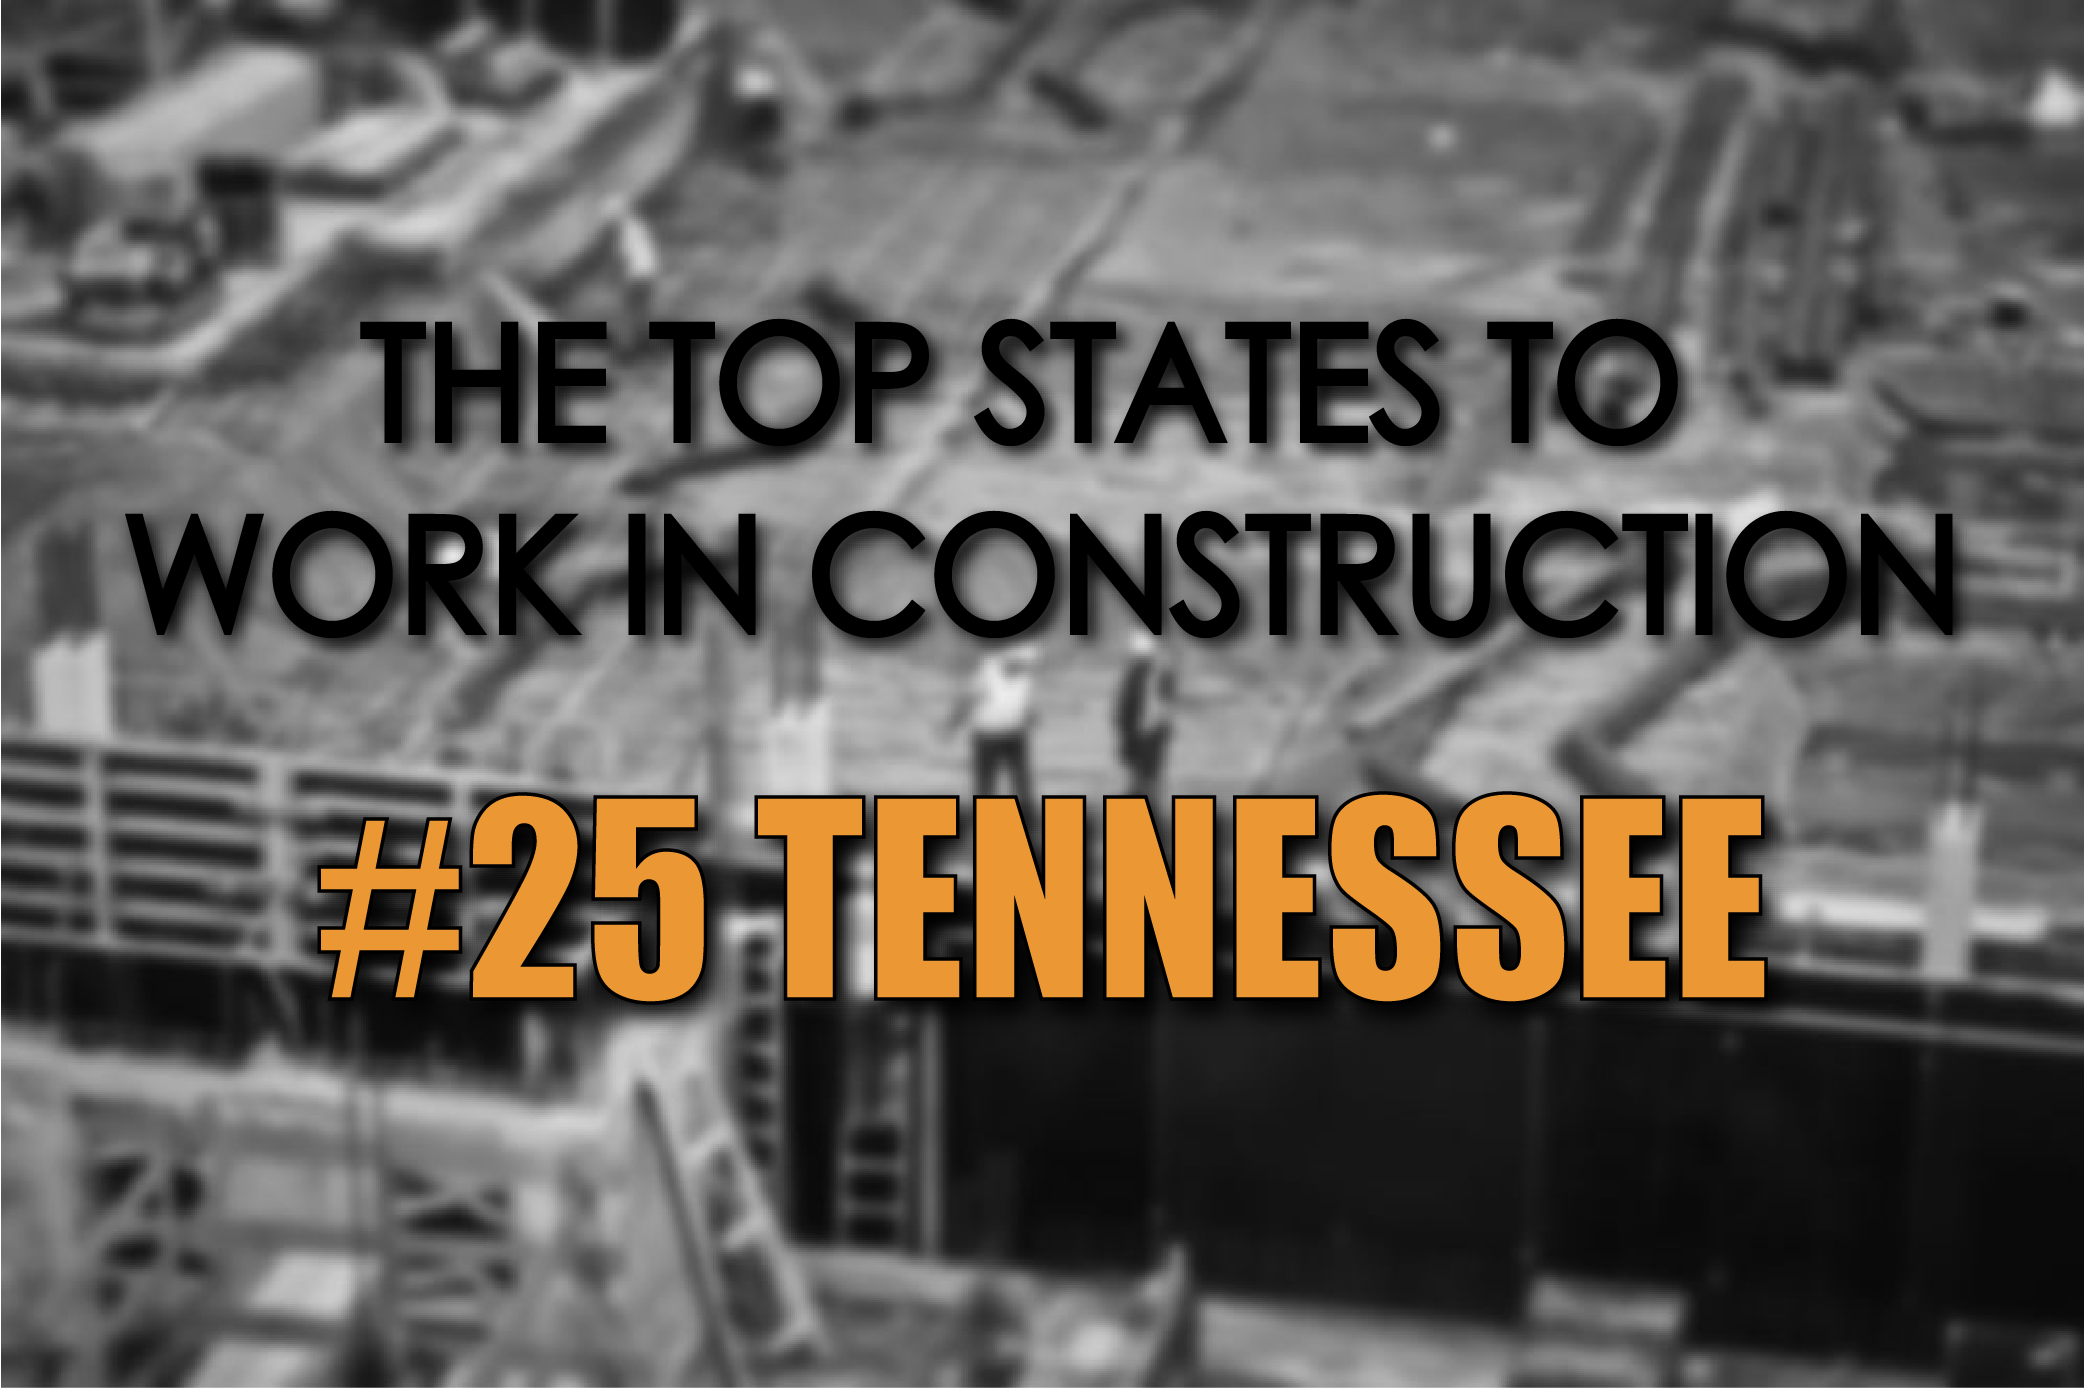 Tennessee top states to work in construction